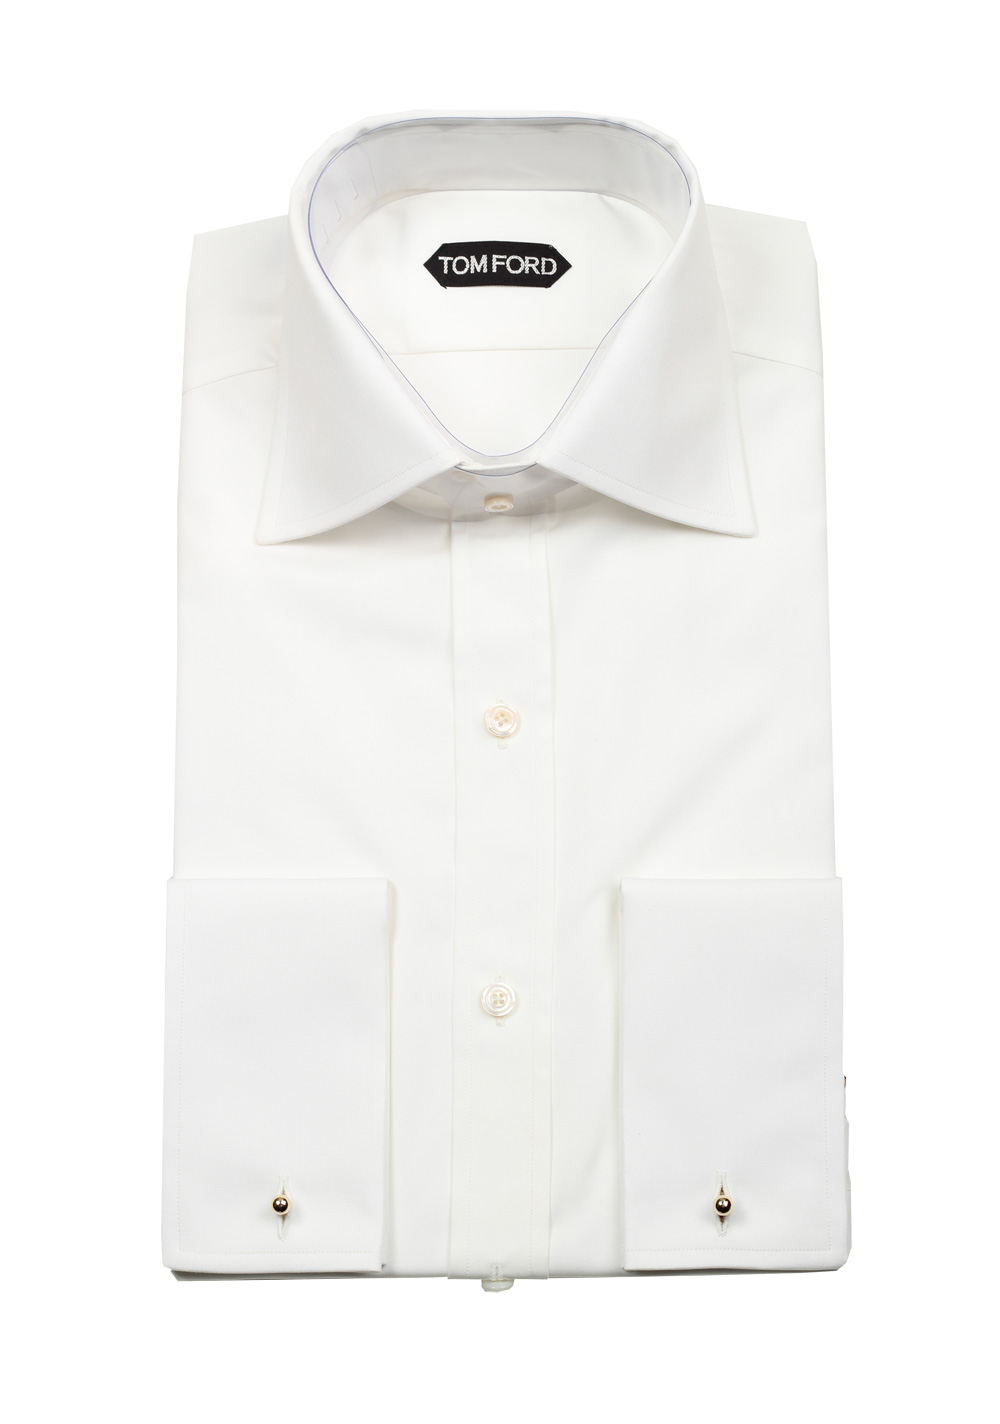 TOM FORD Solid White Dress Shirt French Cuffs Size 41 / 16 U.S. Slim Fit | Costume Limité